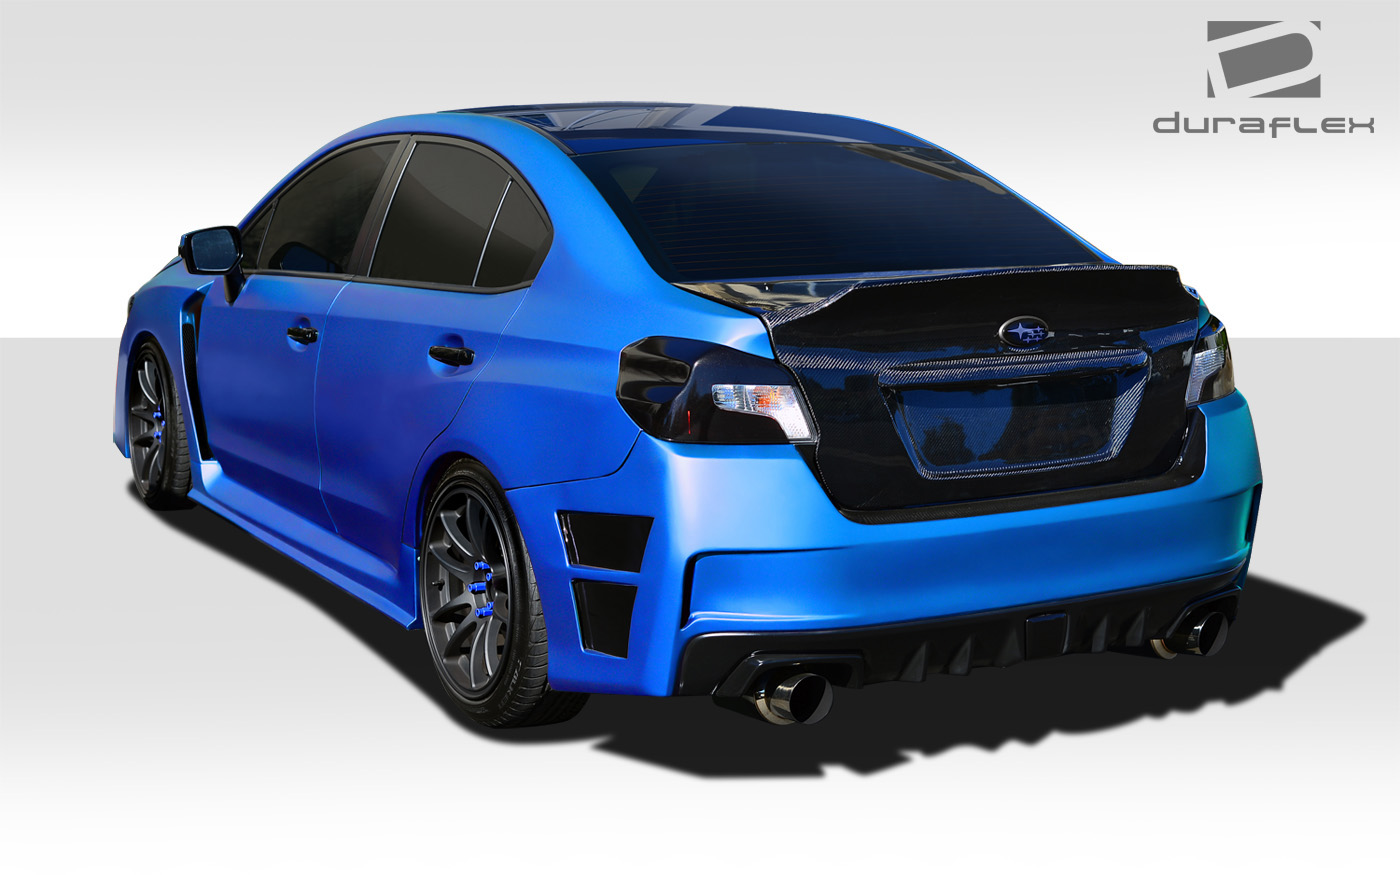 fiberglass kit body kit for 2017 subaru wrx 2015 2018. Black Bedroom Furniture Sets. Home Design Ideas